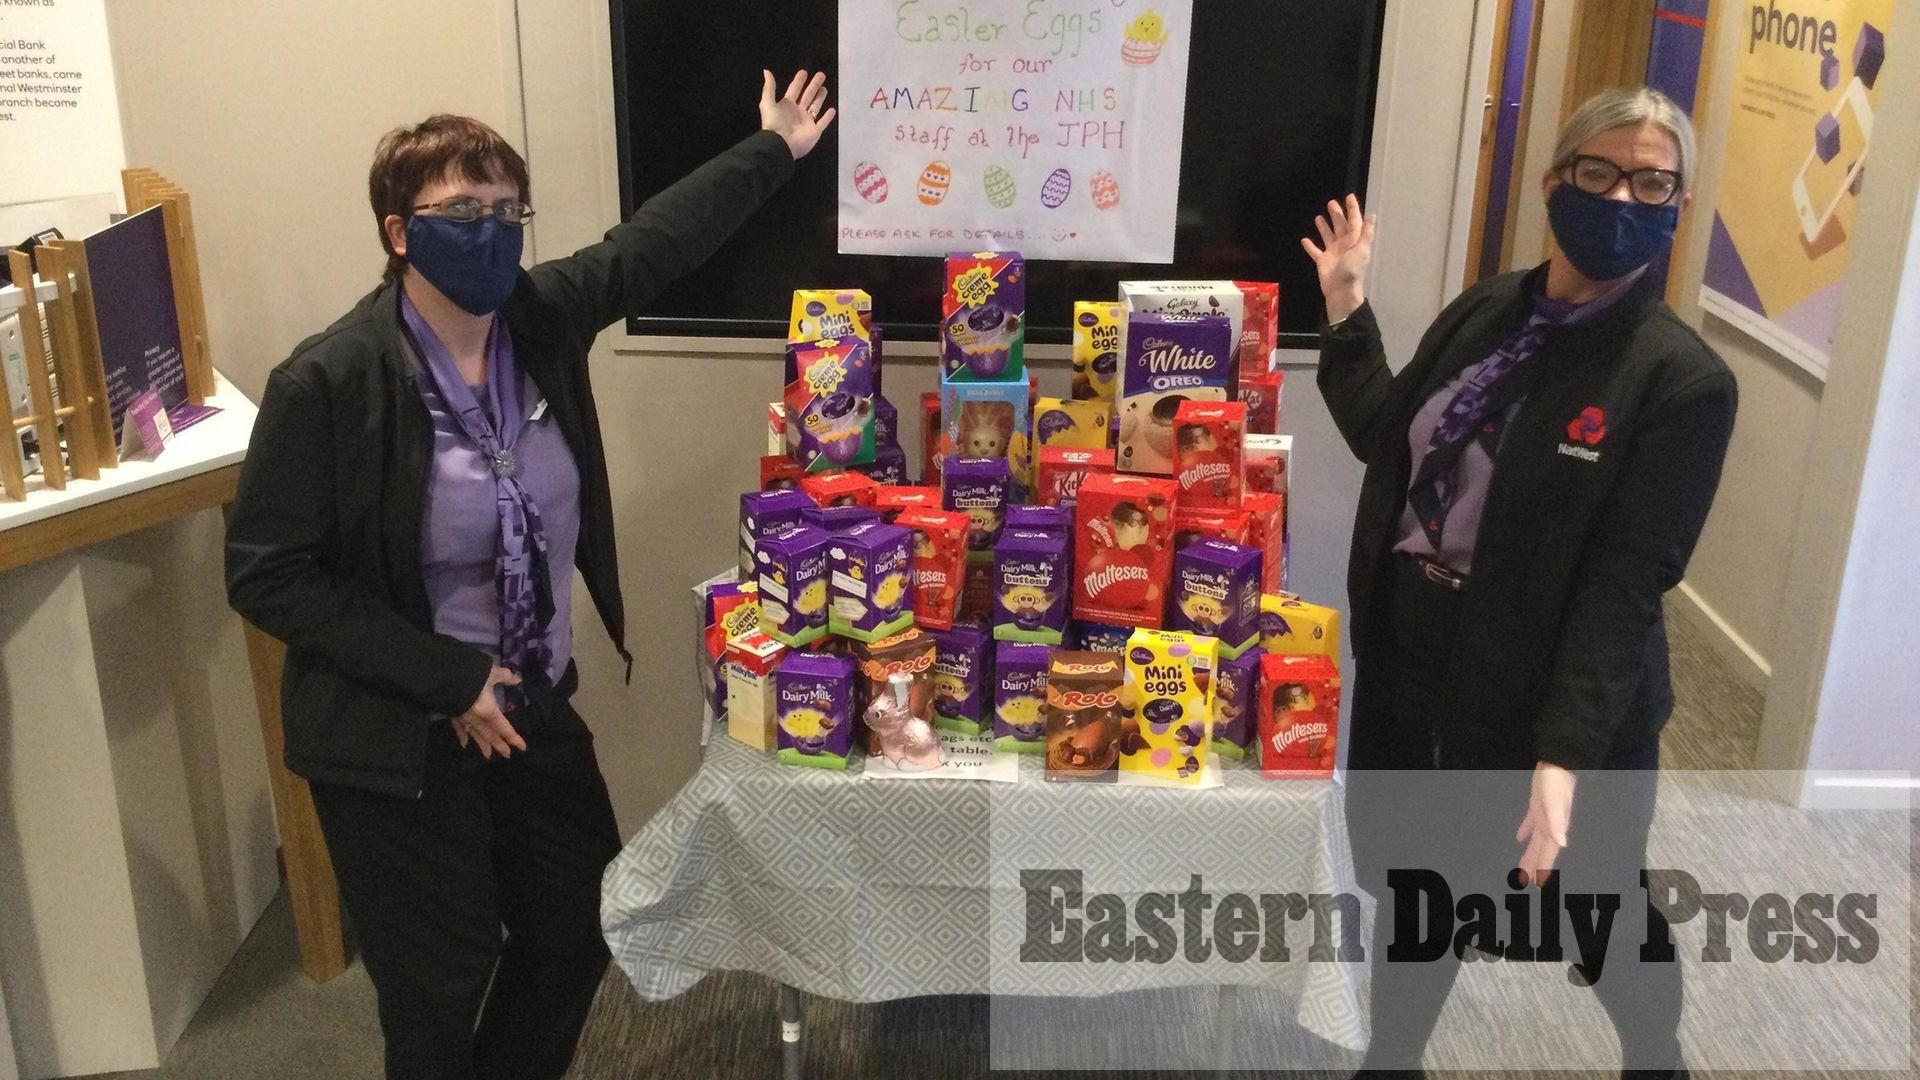 Banks collecting Easter eggs for NHS staff